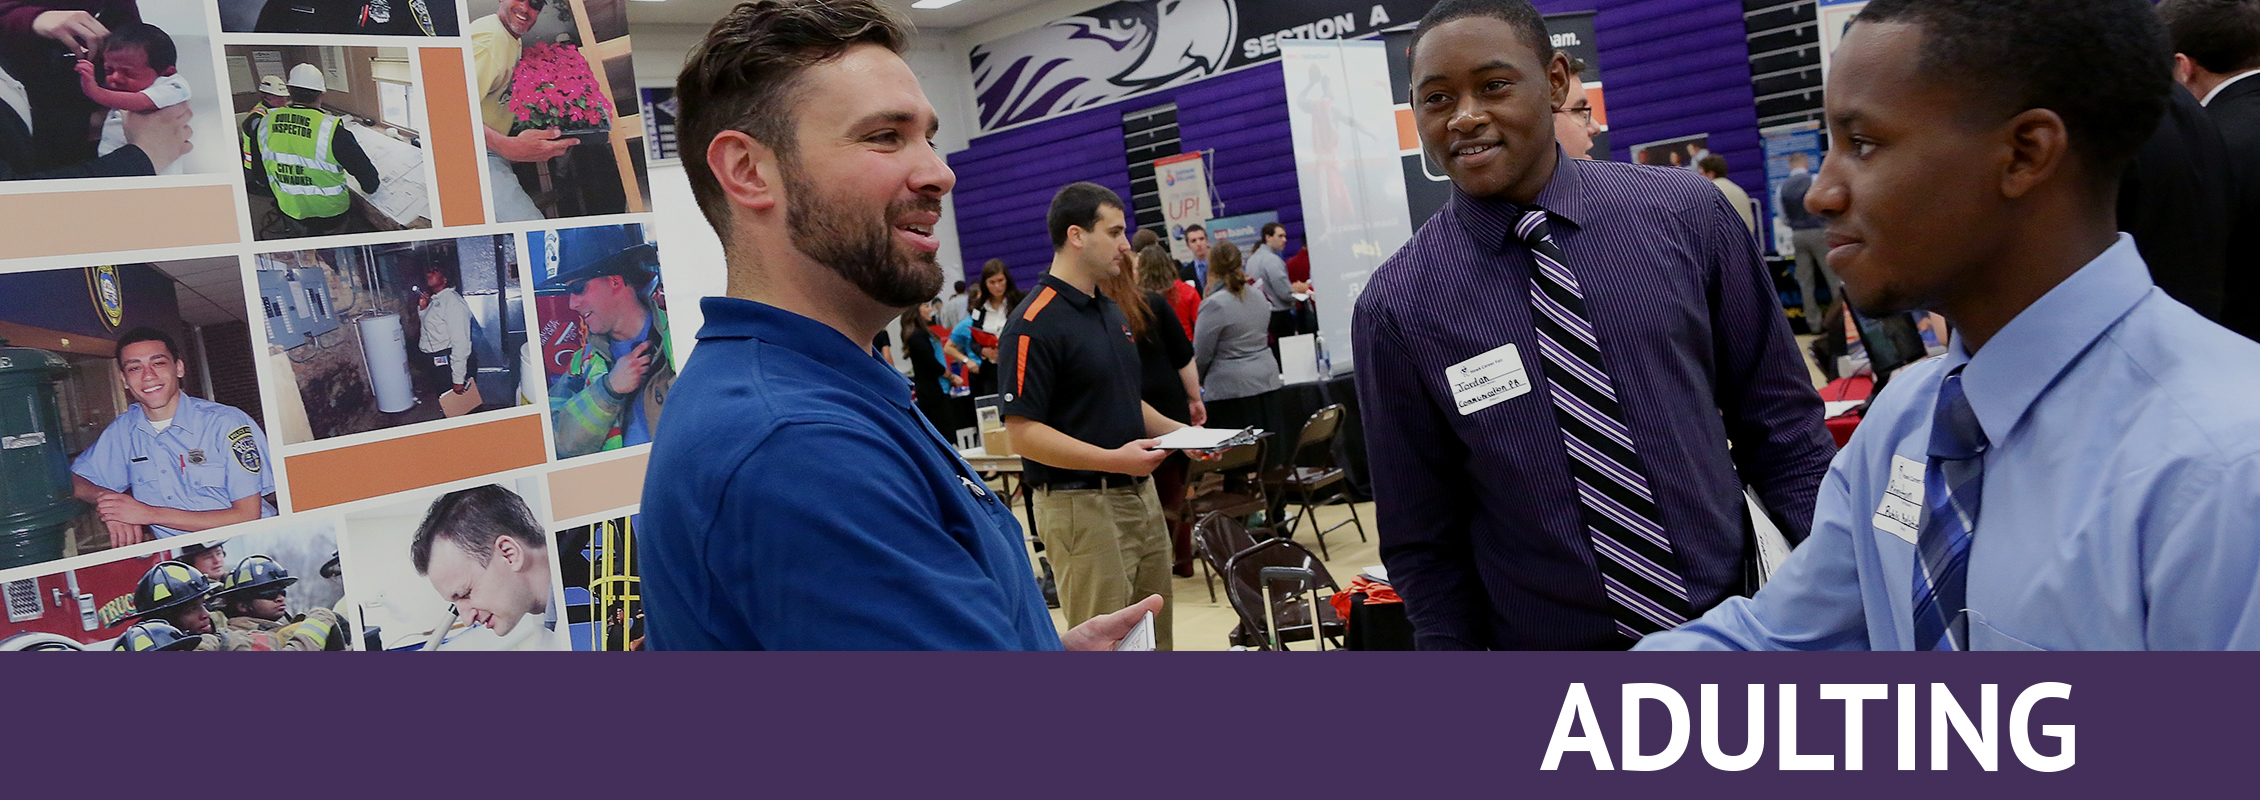 Adulting: Two students in ties shake hands with a recruiter at a job fair